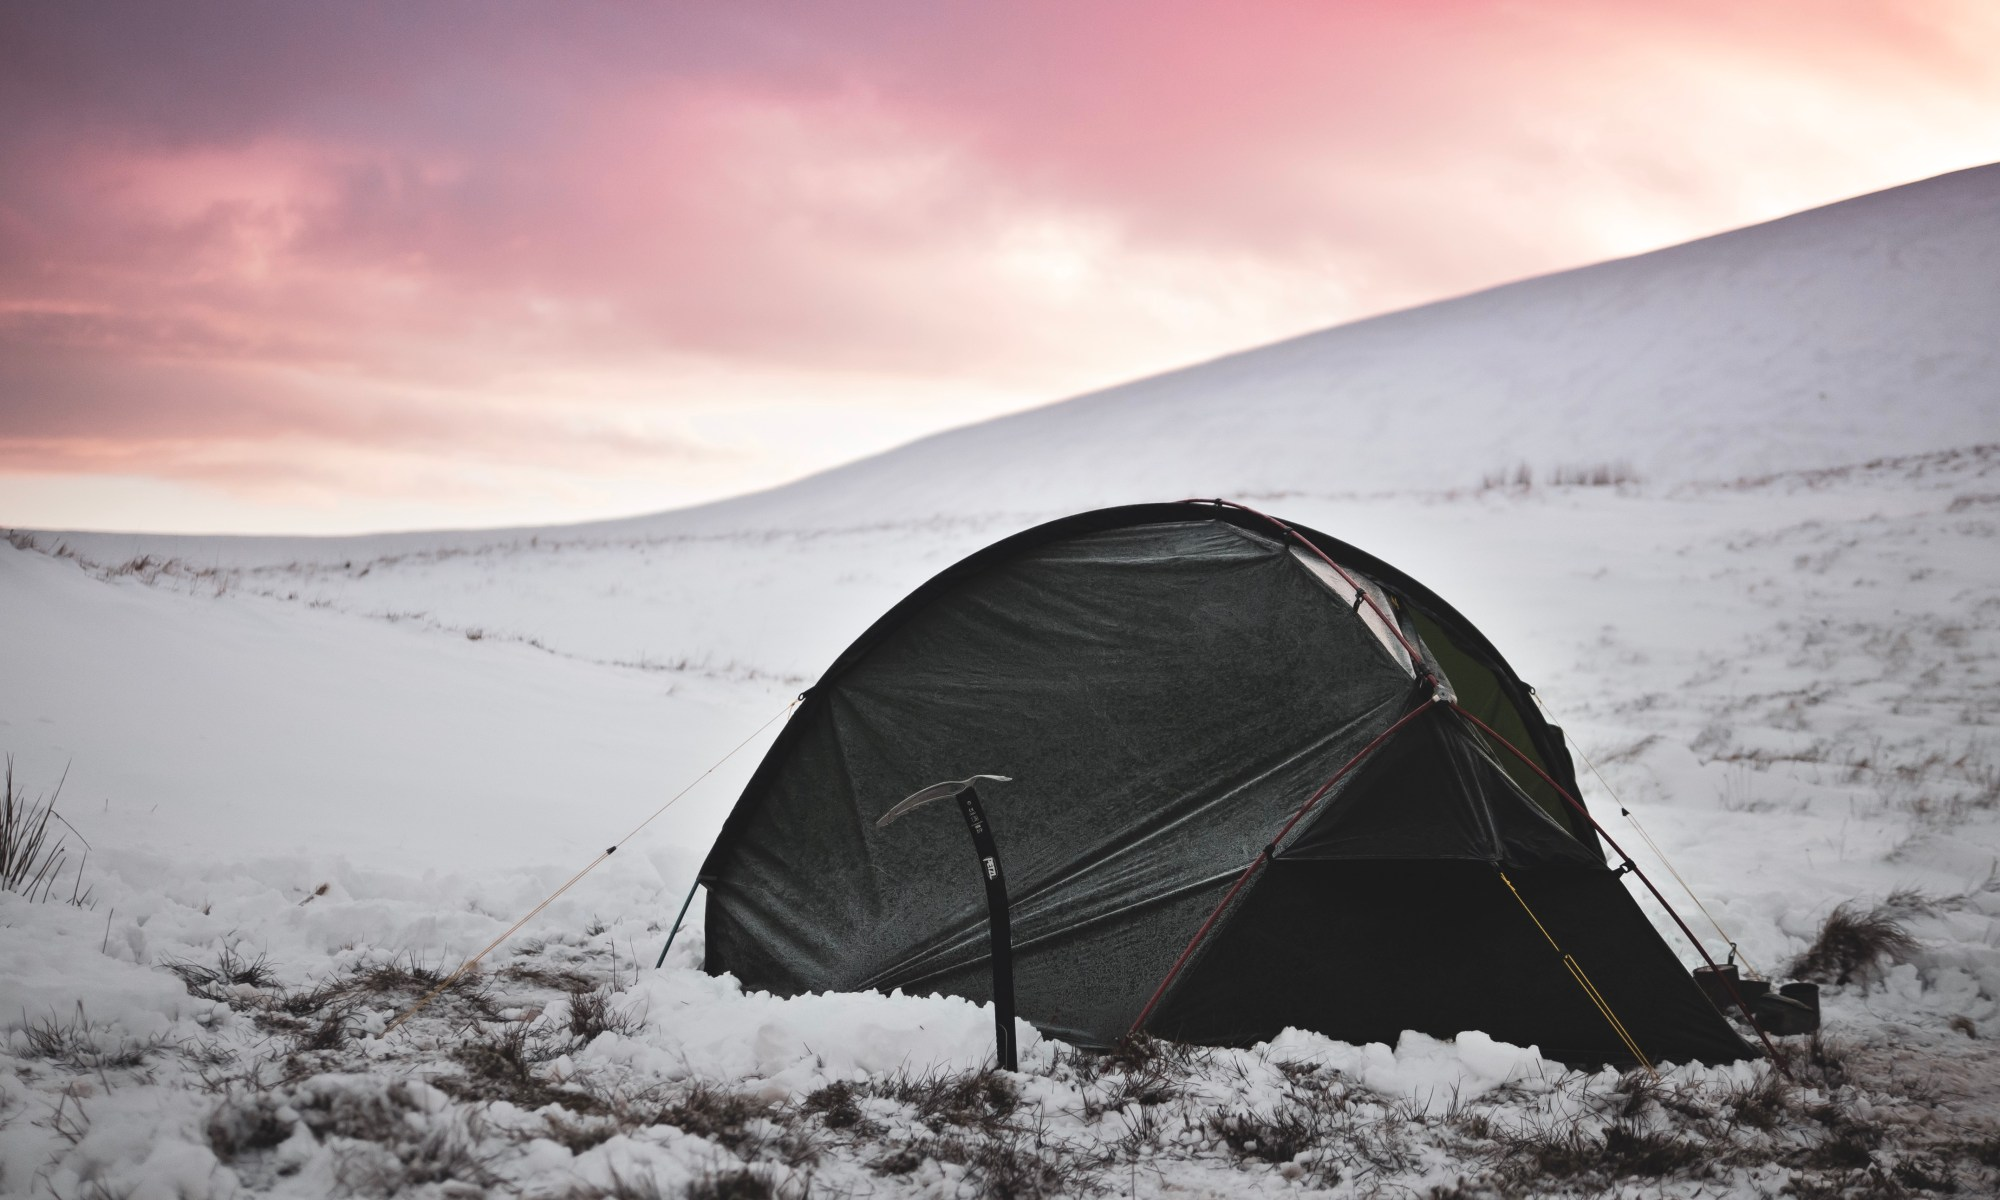 Terra Nova Southern Cross 2 tent pitched in snow in Brecon Beacons